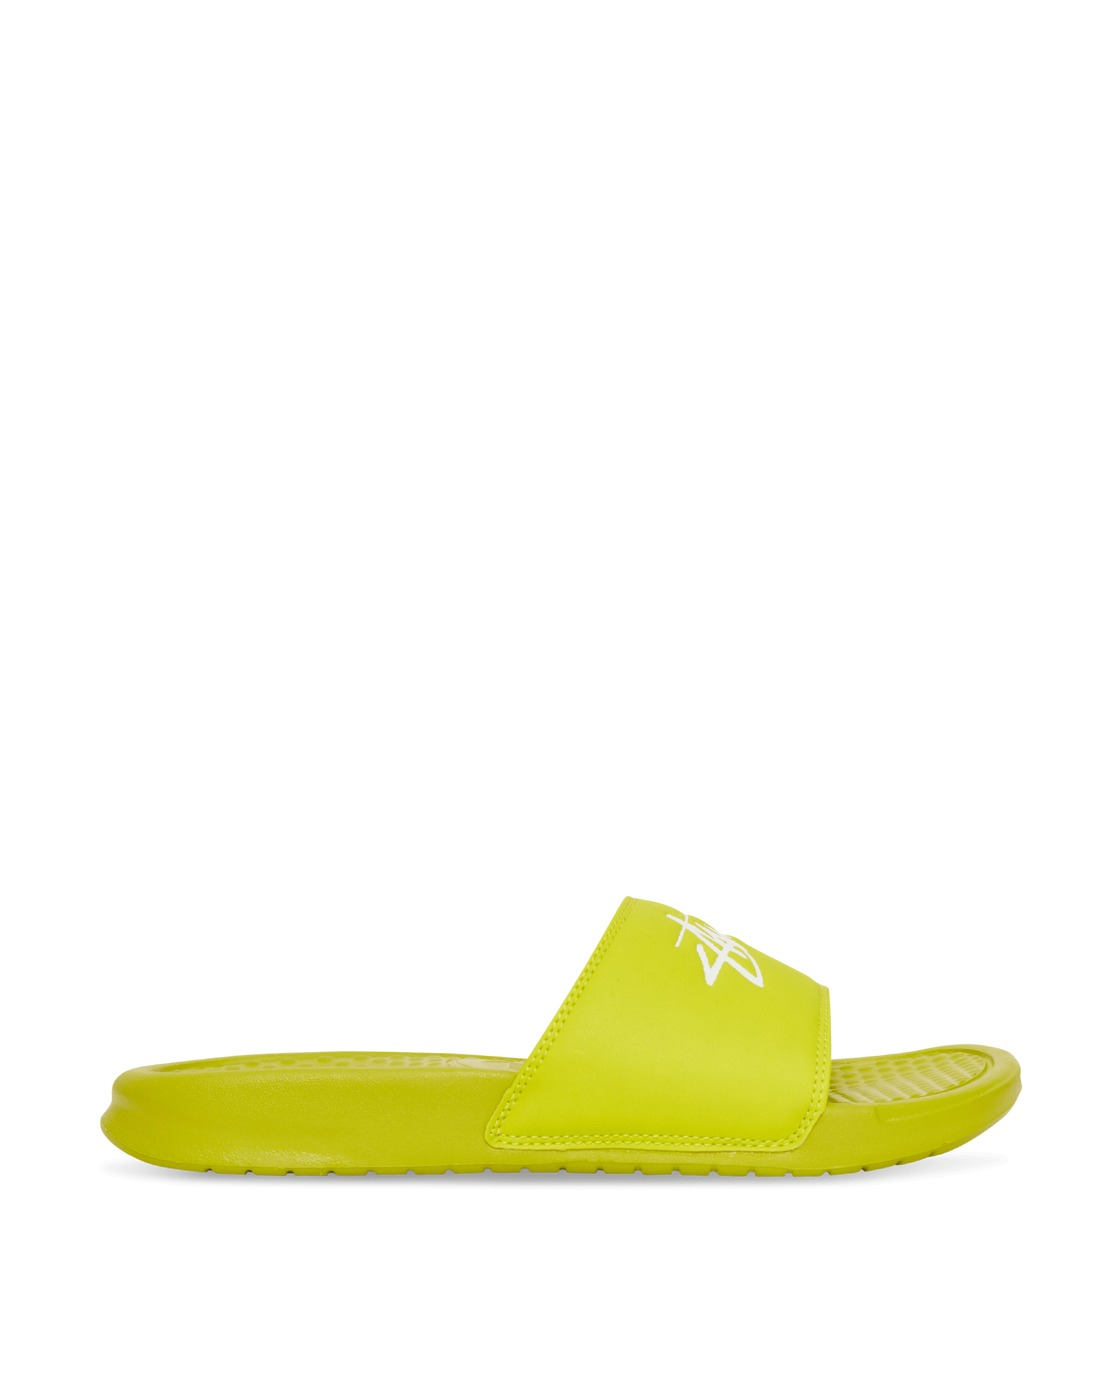 Nike Special Project Stussy Benassi Slides Bright Cactus/White